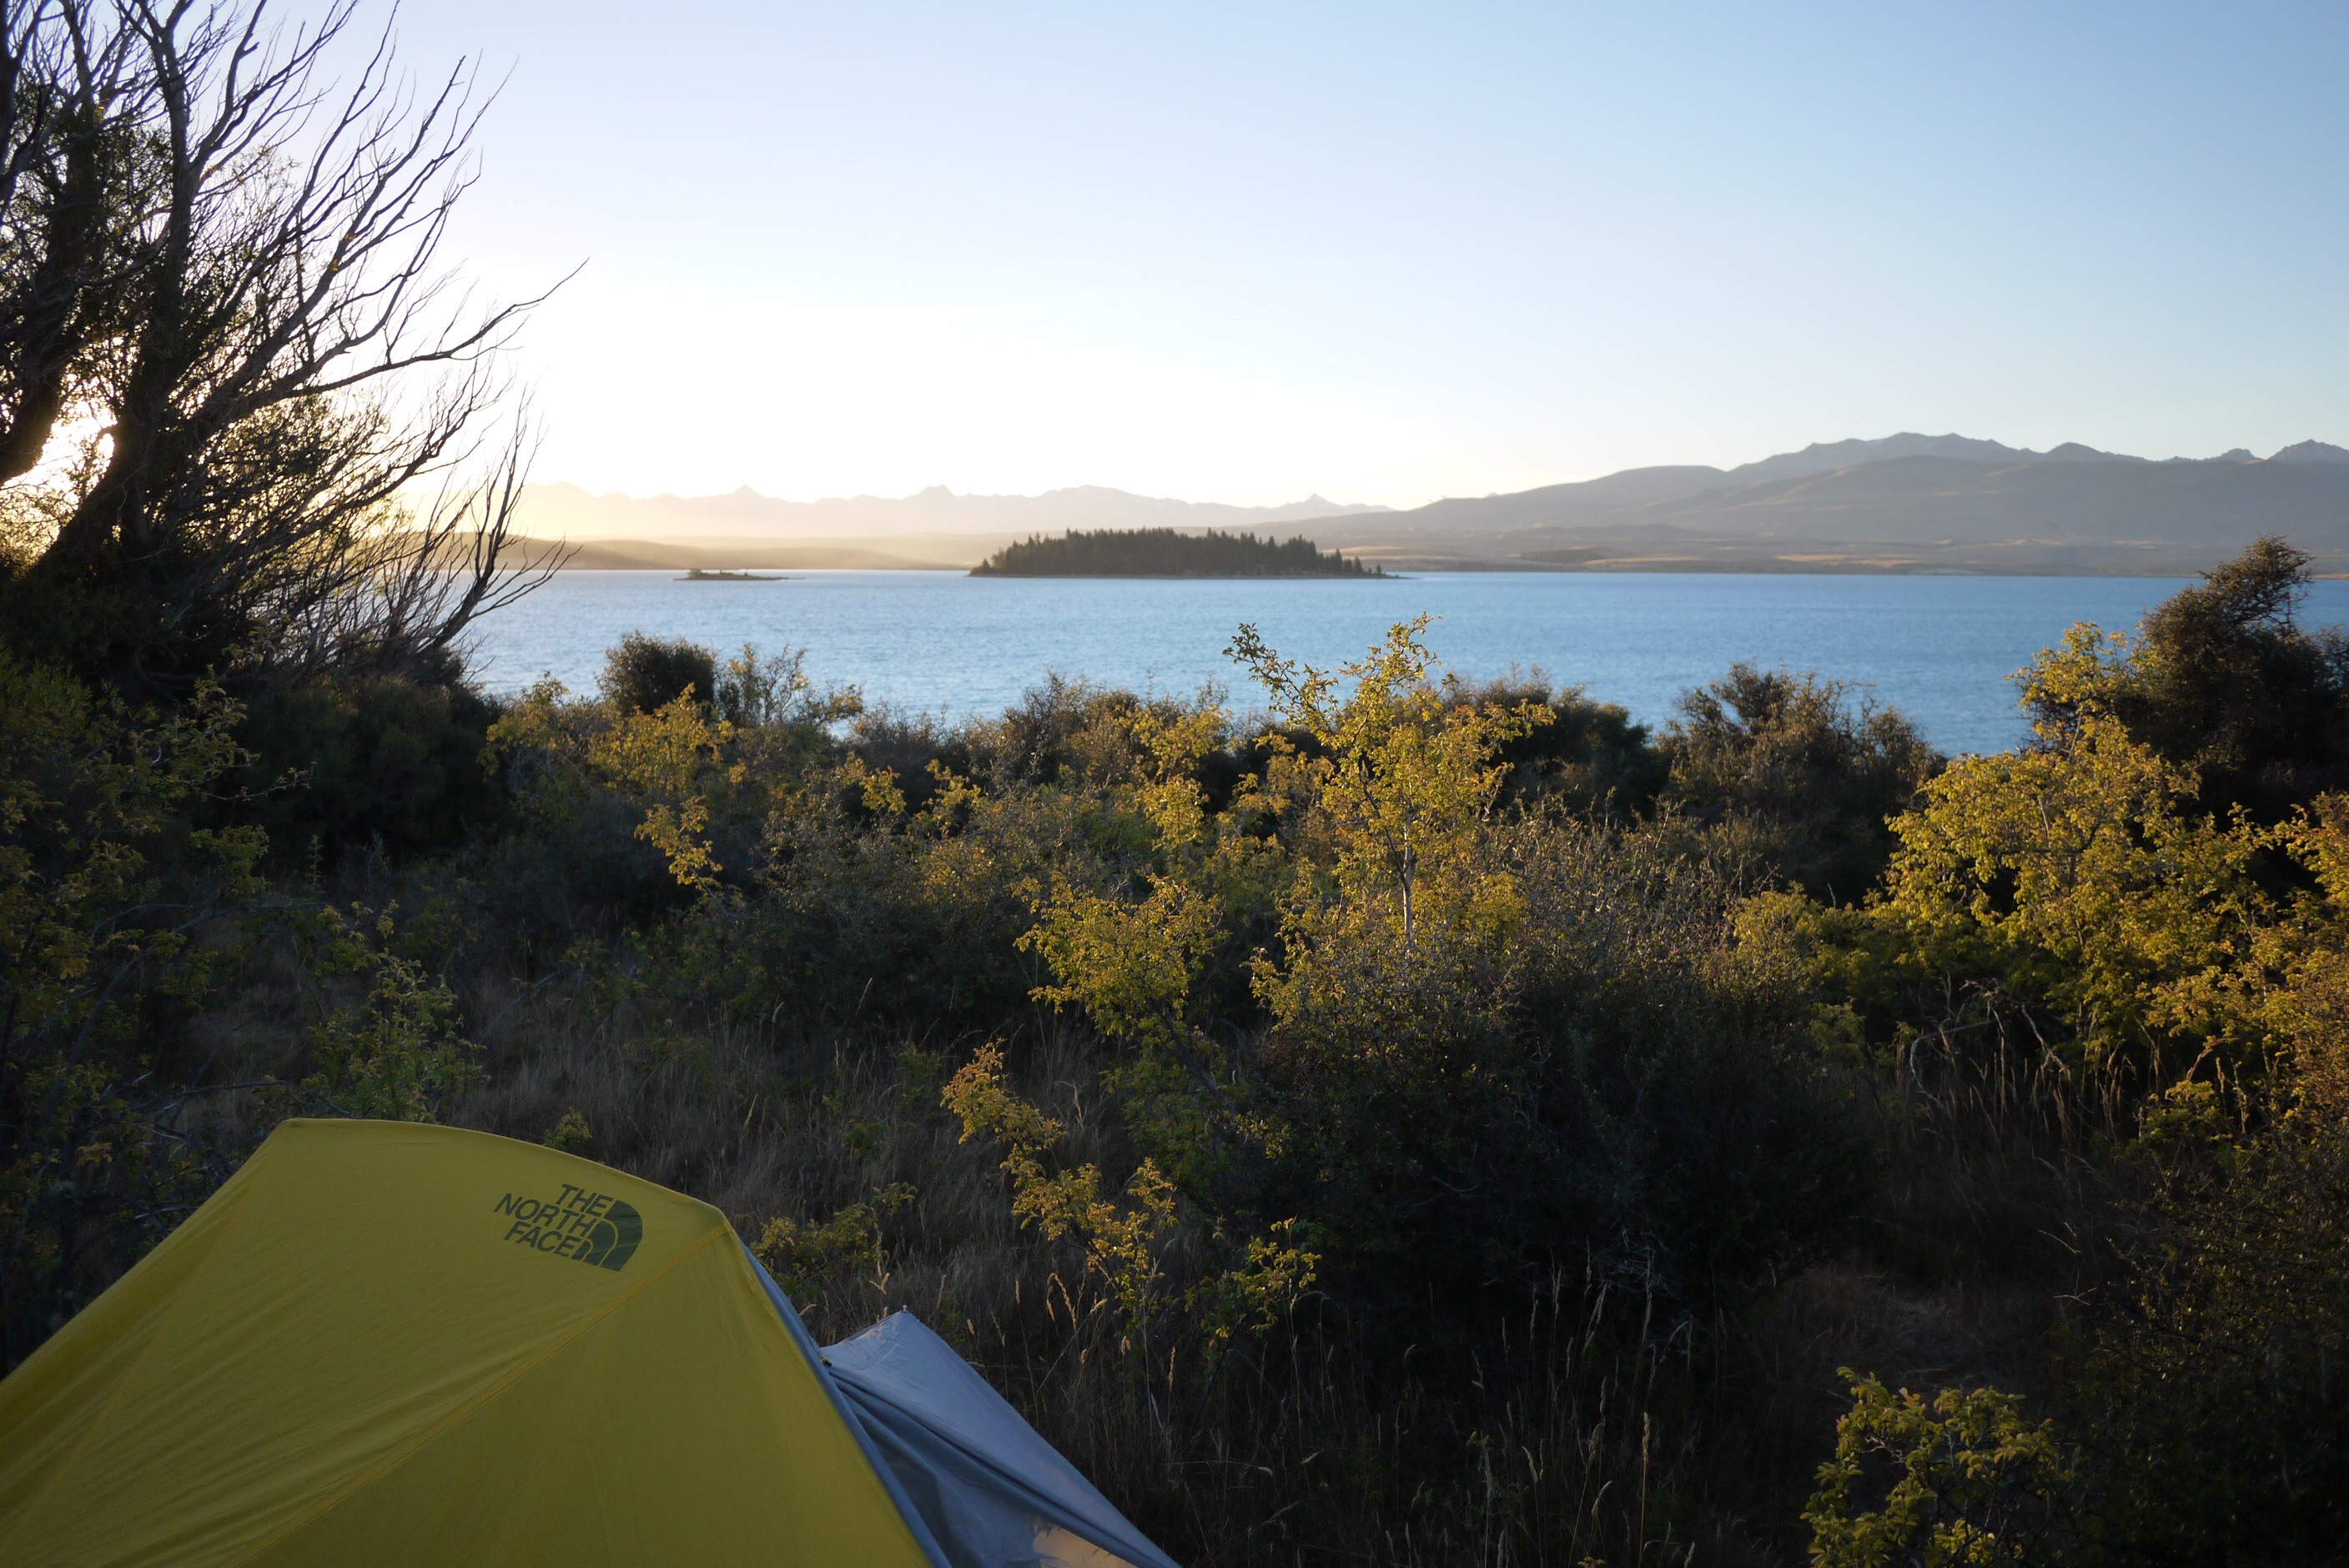 Camped on the shores of Lake Tekapo